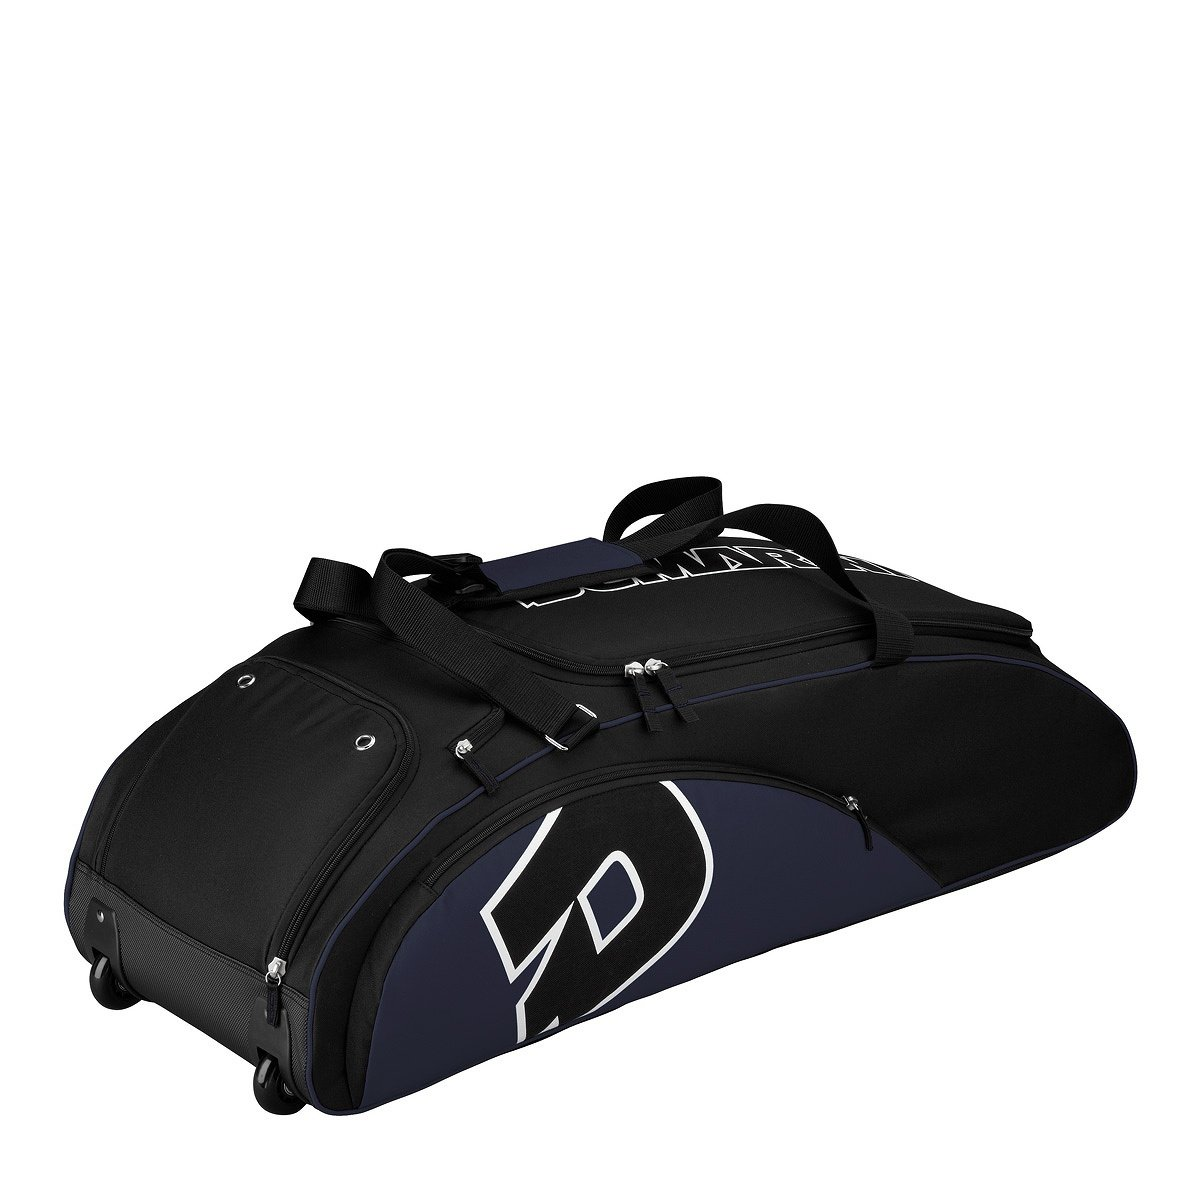 DeMarini Vendetta Bag with Wheels